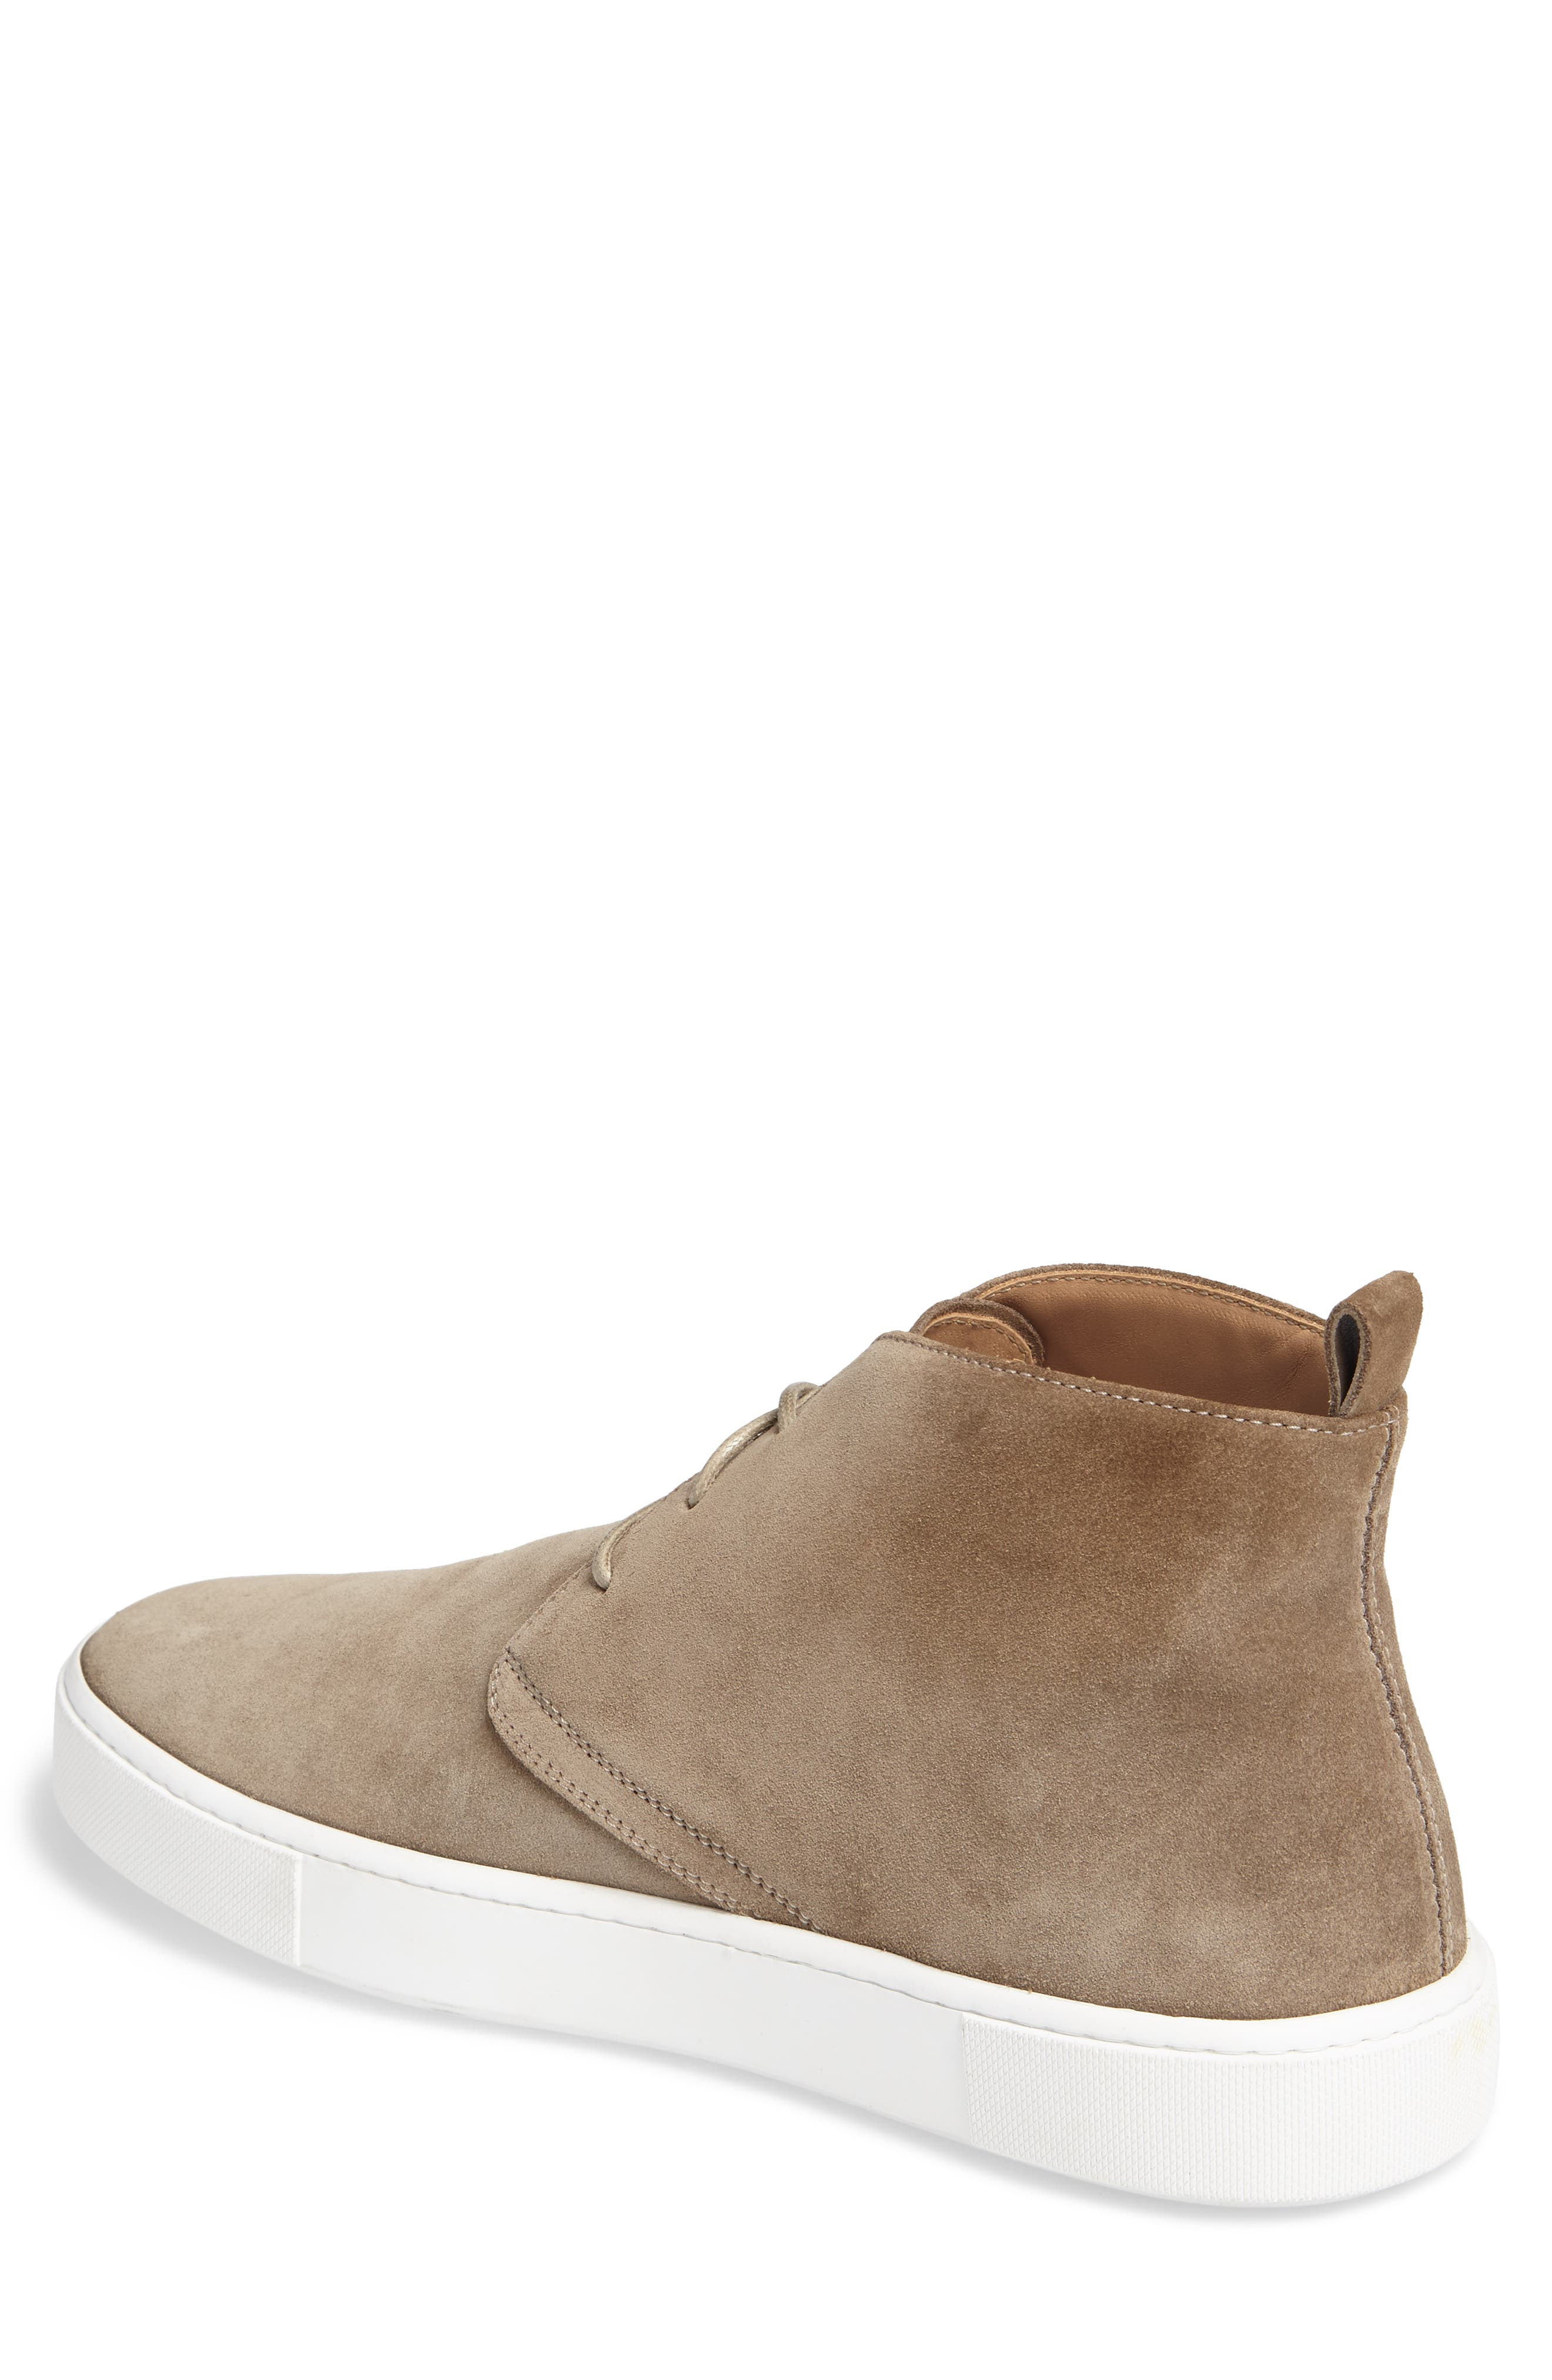 Leather Chukka Boot,                             Alternate thumbnail 2, color,                             Brown Suede